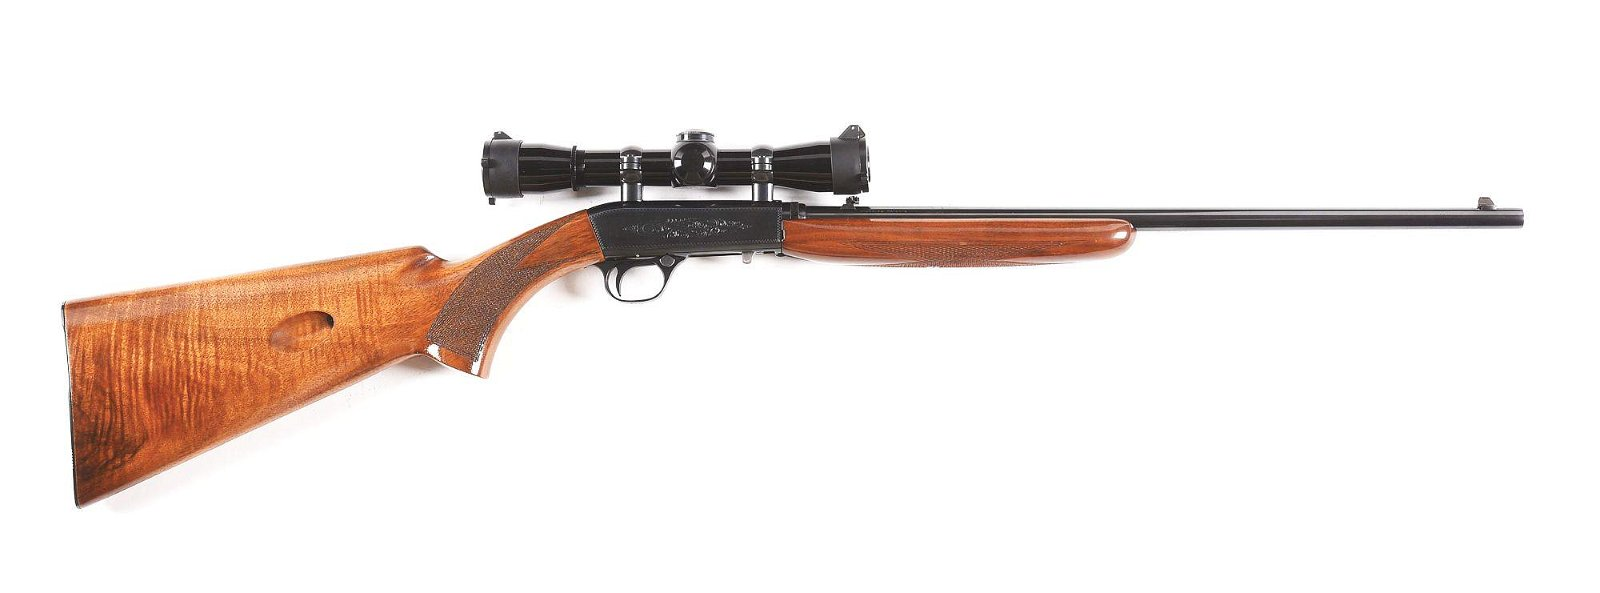 (C) BROWNING .22 LR SEMI AUTOMATIC RIFLE WITH FACTORY